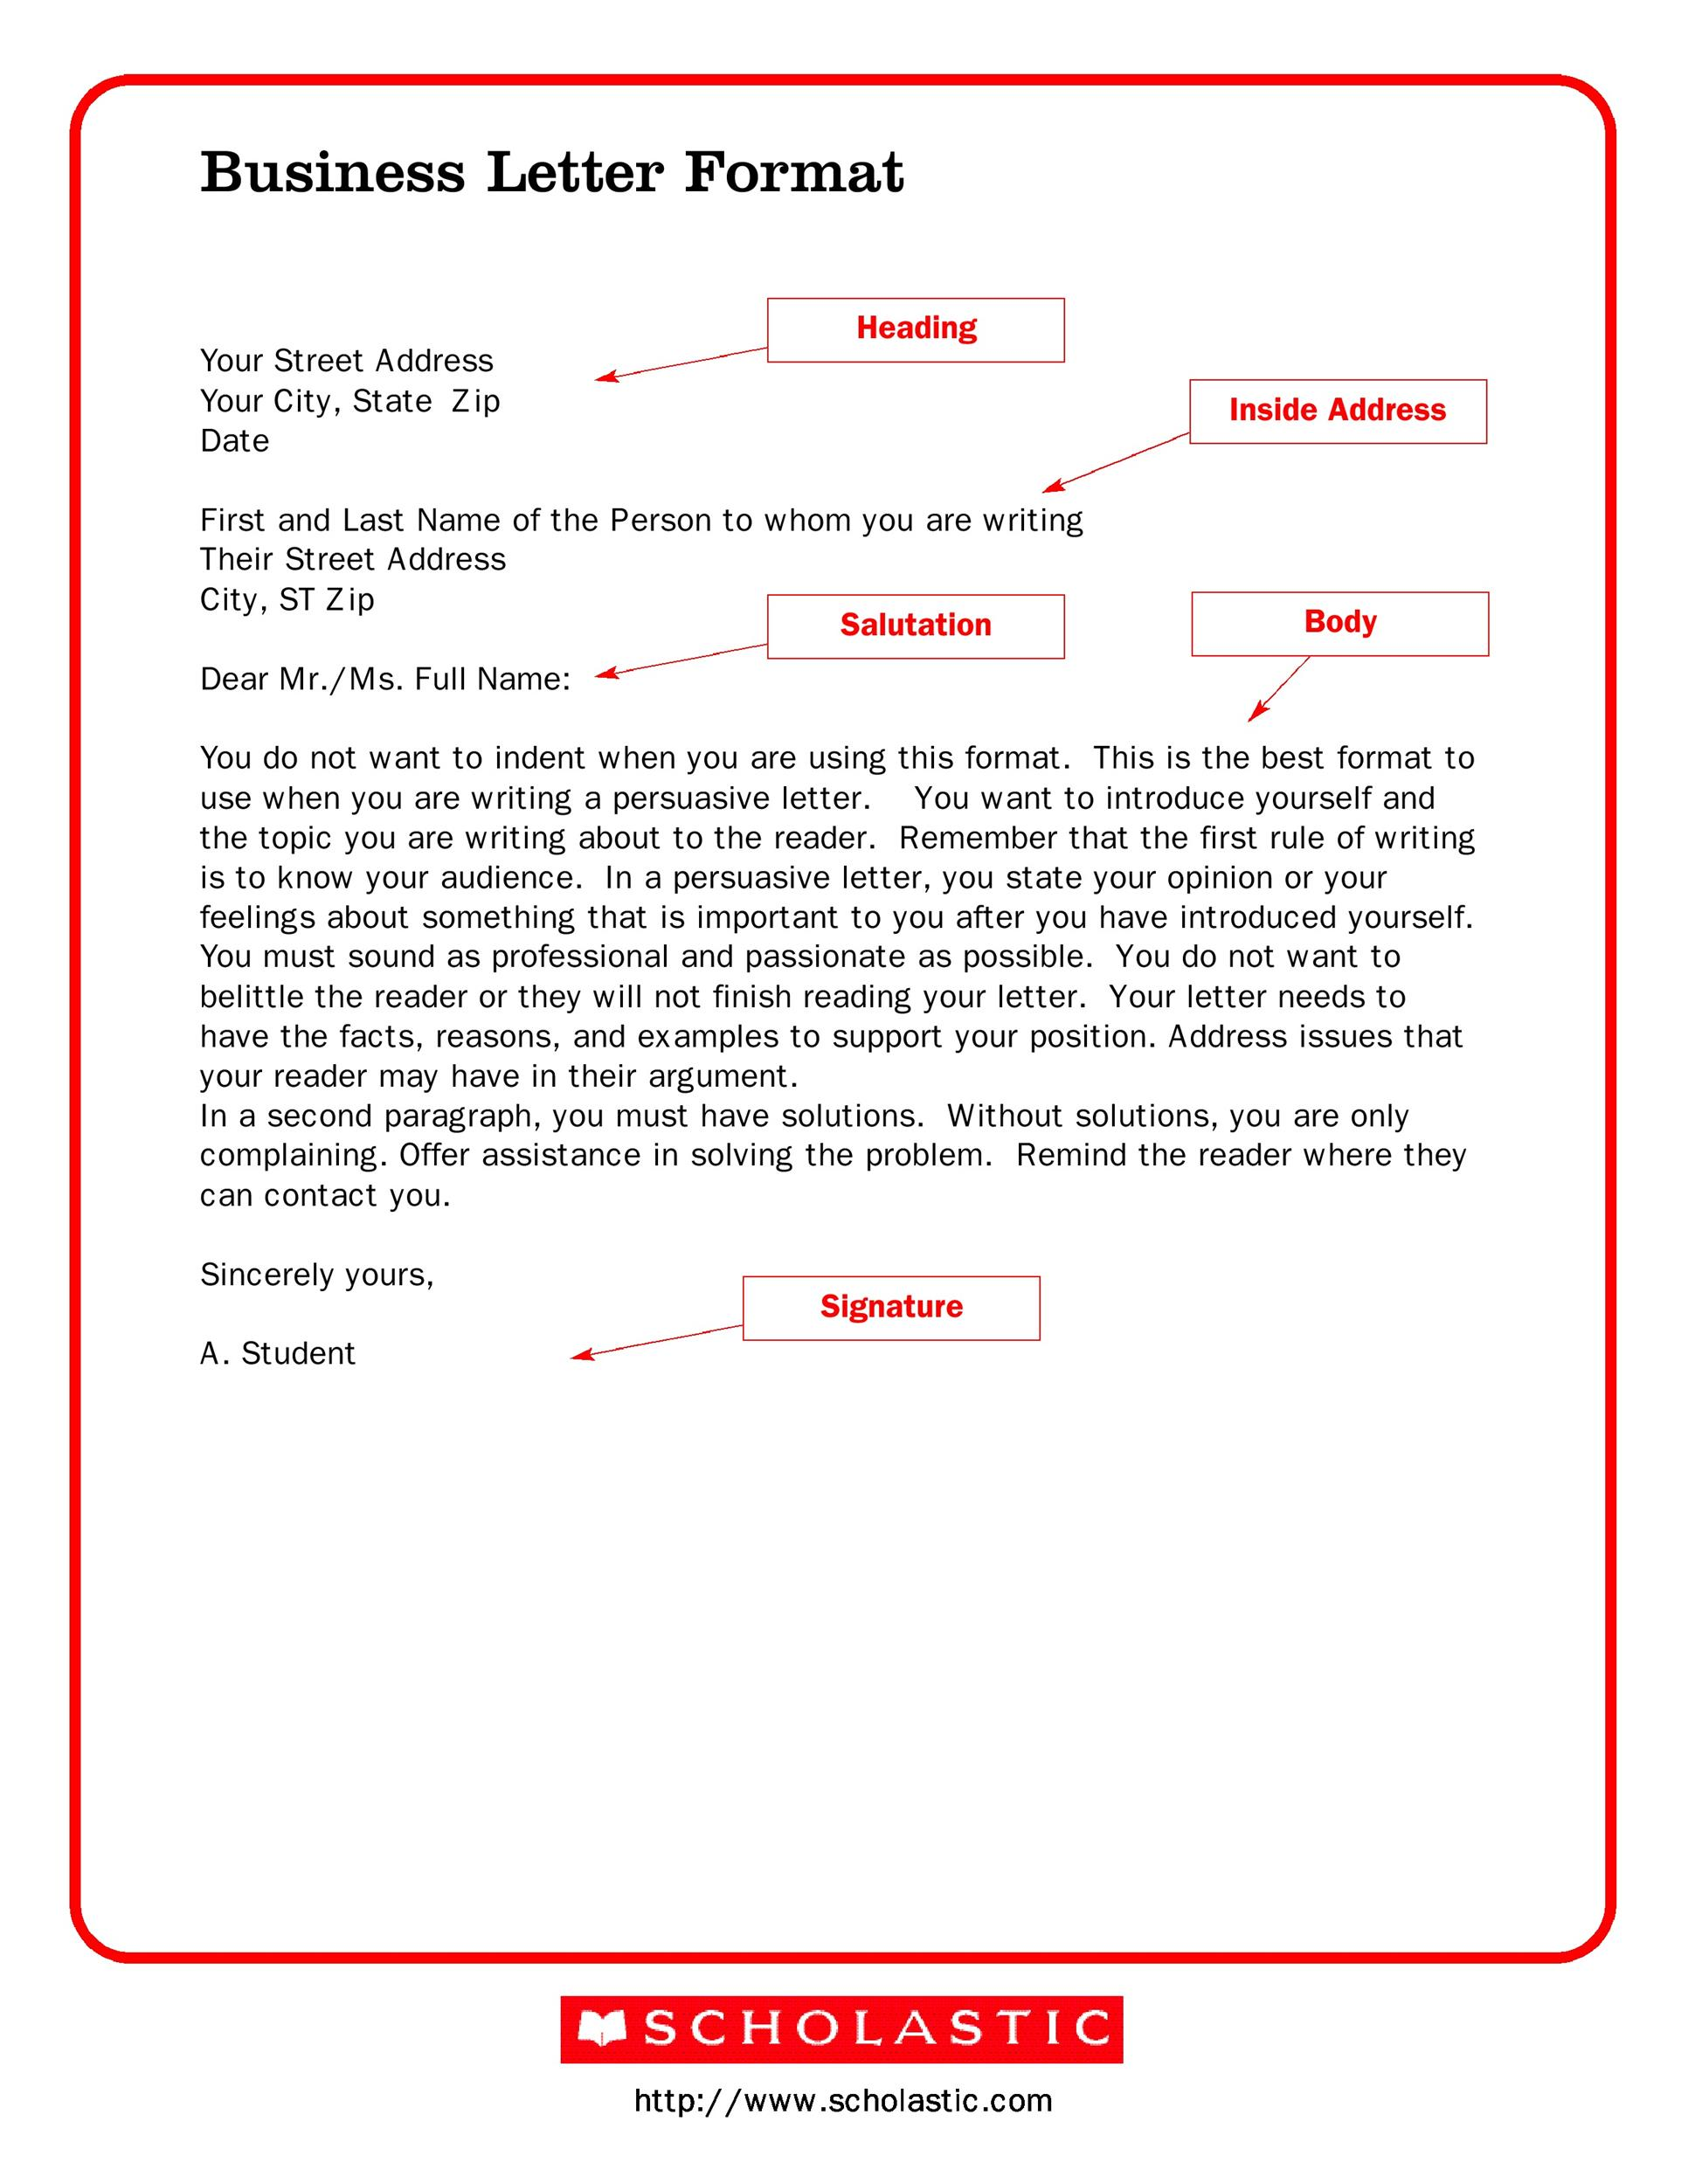 Business letter format sample letter wajeb Choice Image